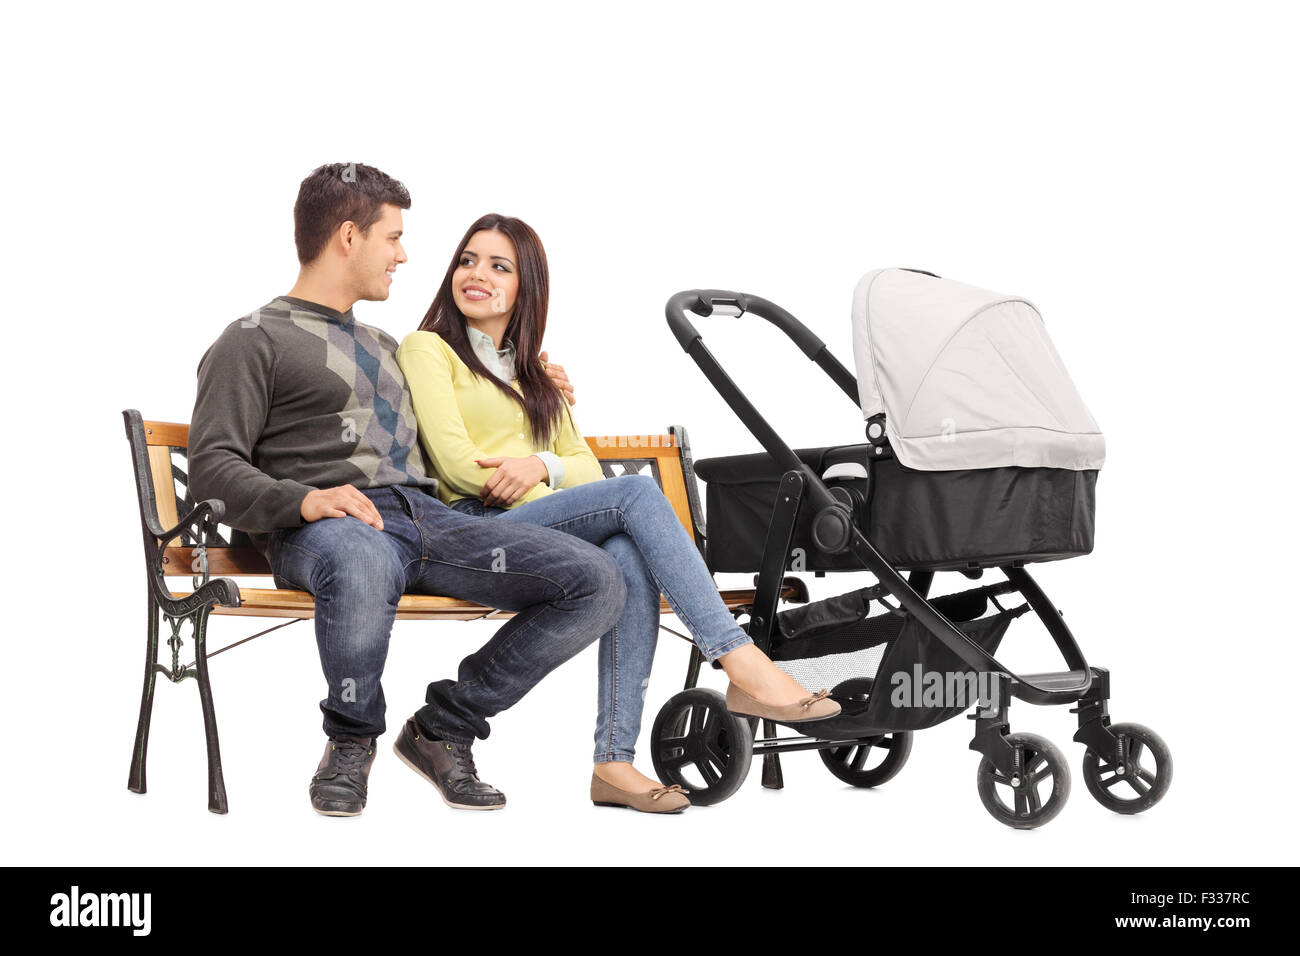 Young parents sitting on a bench and talking to each other with a baby stroller next to them isolated on white background - Stock Image